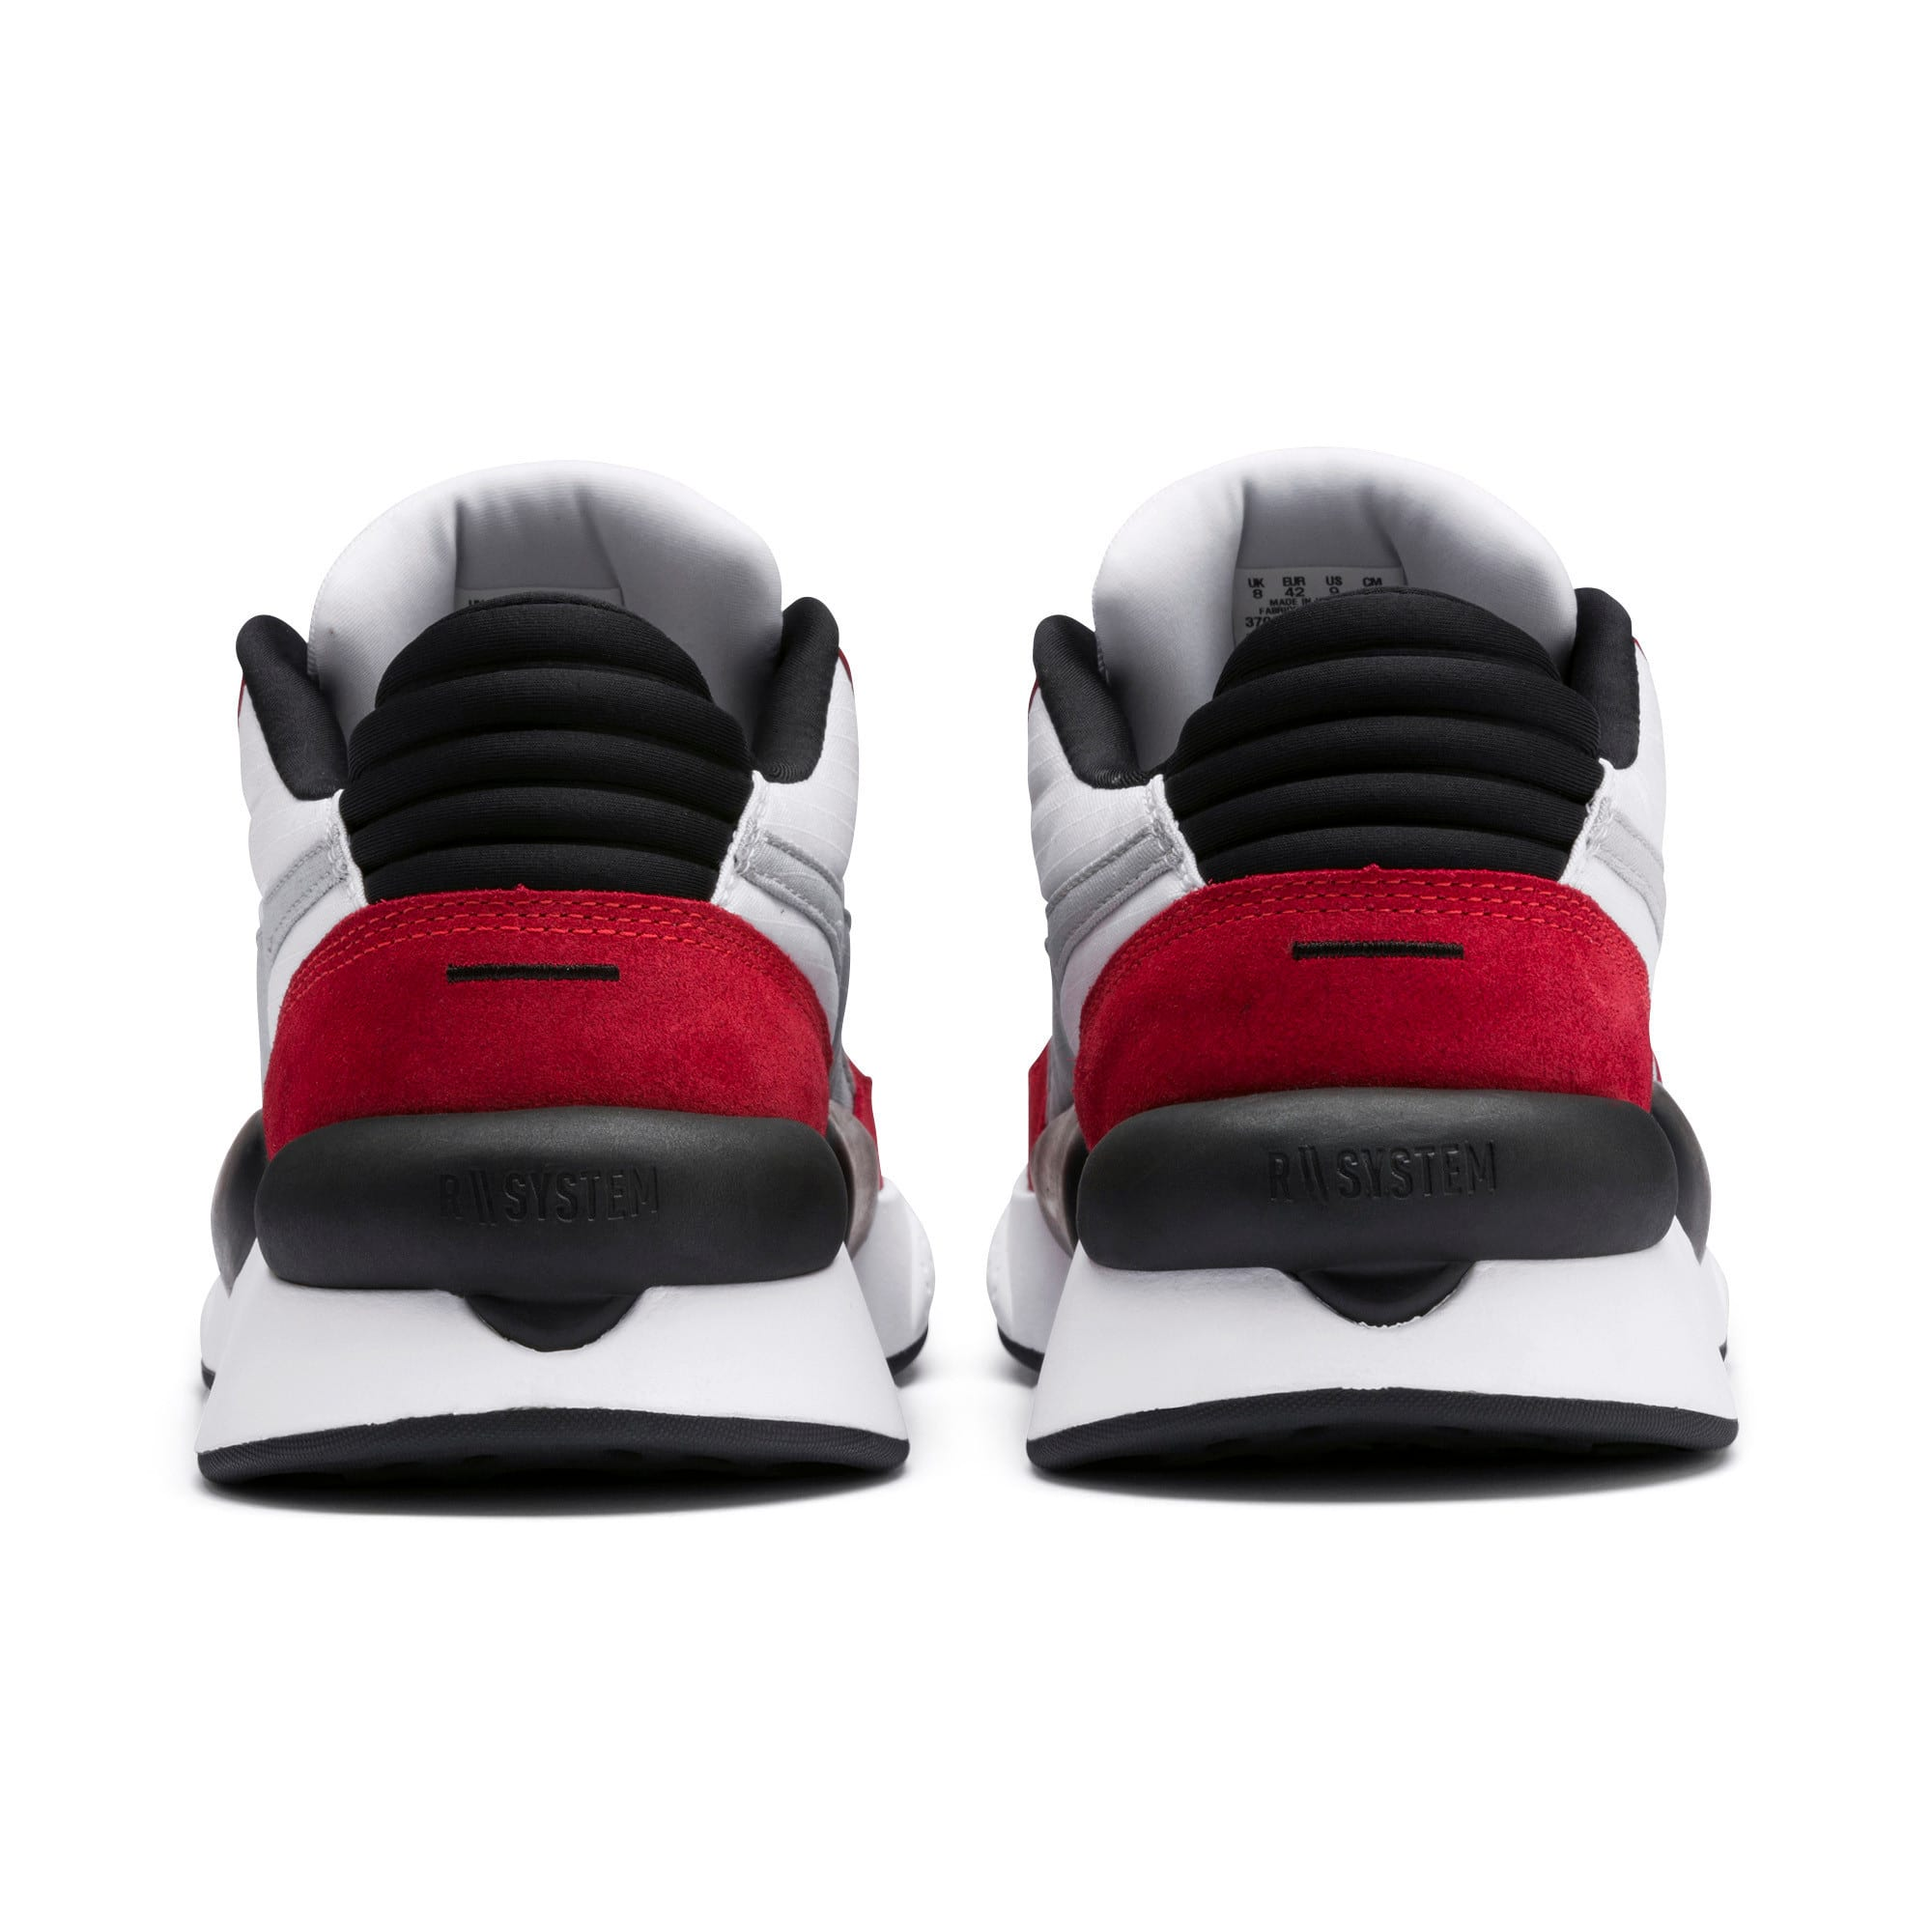 Thumbnail 5 of RS 9.8 Space Trainers, Puma White-High Risk Red, medium-IND